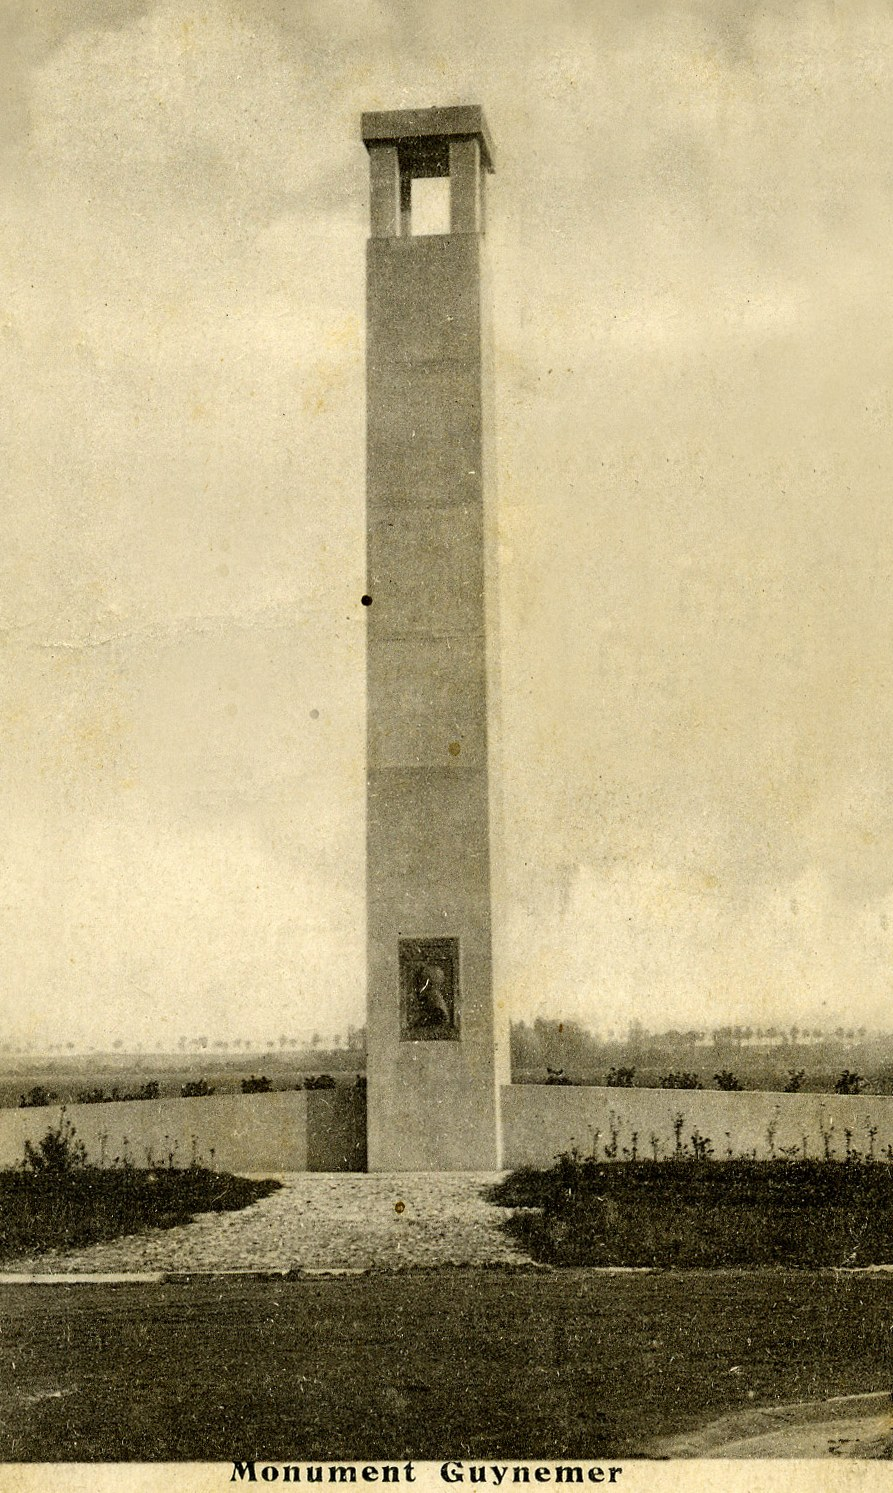 Monument Georges Guynemer - Premier drapeau de l'Aviation Française Ouges Côte-d'Or (21), Dijon Longvic + ex-BA 102 airfield